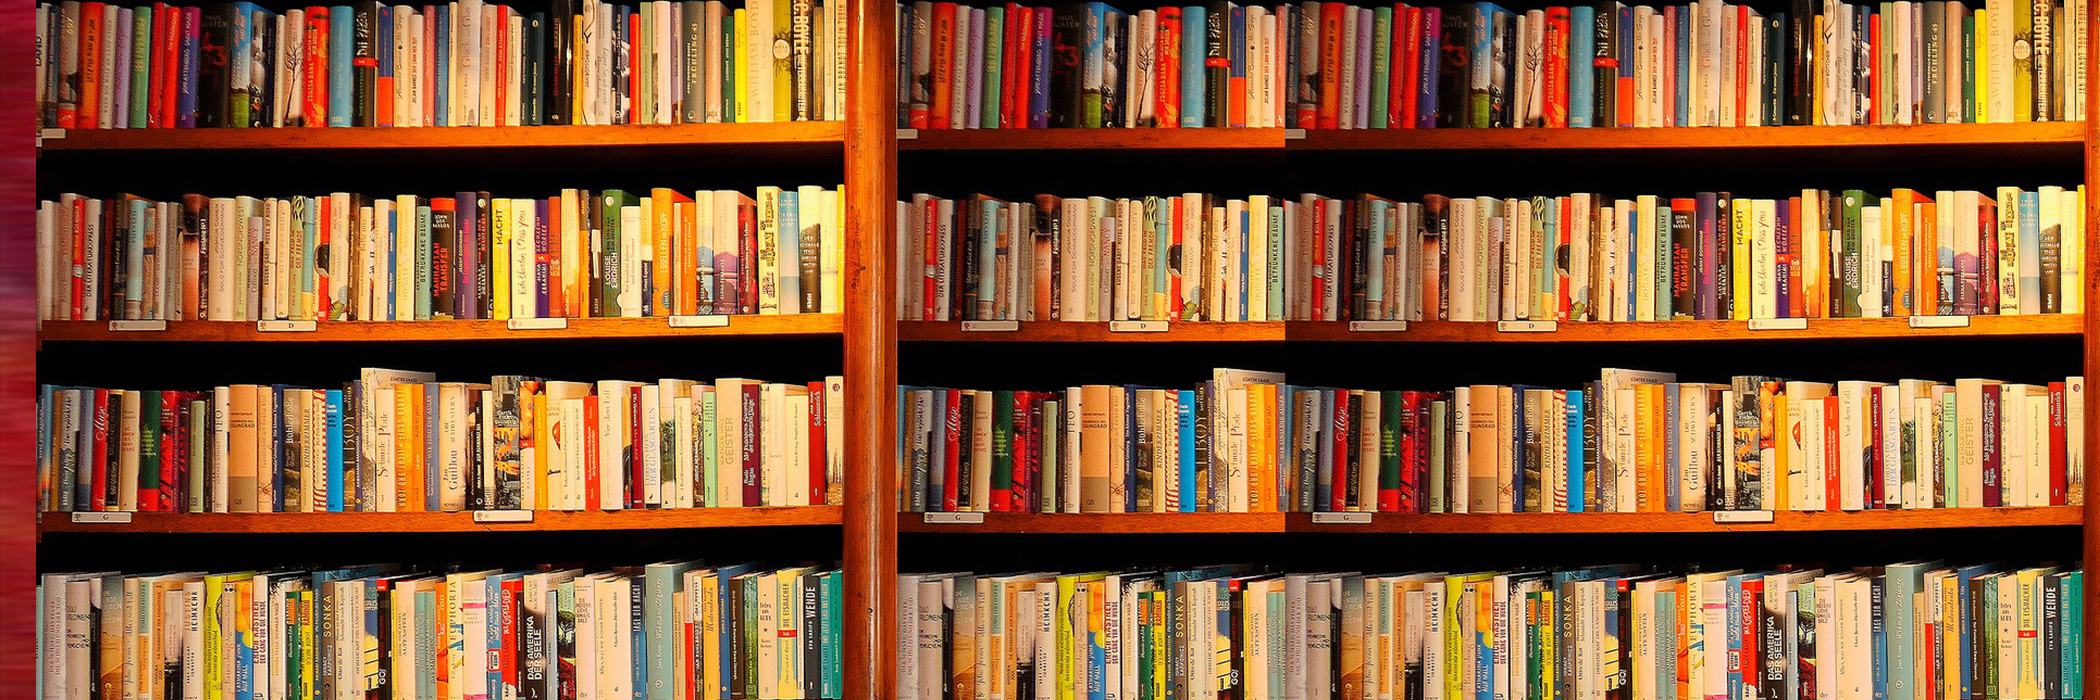 """<a href=""""https://www.kilv.org/event/what-can-your-library-do-for-you-the-library-as-a-community-resource.html""""                                     target="""""""">                                                                 <span class=""""slider_title"""">                                     The Library as a Community Resource                                </span>                                                                 </a>                                                                                                                                                                                       <span class=""""slider_description"""">Join us on 10/31 for a talk about what your library can do for you.  (Featuring Debbie Jack and presented by The KI Adult Education Committee)</span>                                                                                     <a href=""""https://www.kilv.org/event/what-can-your-library-do-for-you-the-library-as-a-community-resource.html"""" class=""""slider_link""""                             target="""""""">                             Click to Register                            </a>"""